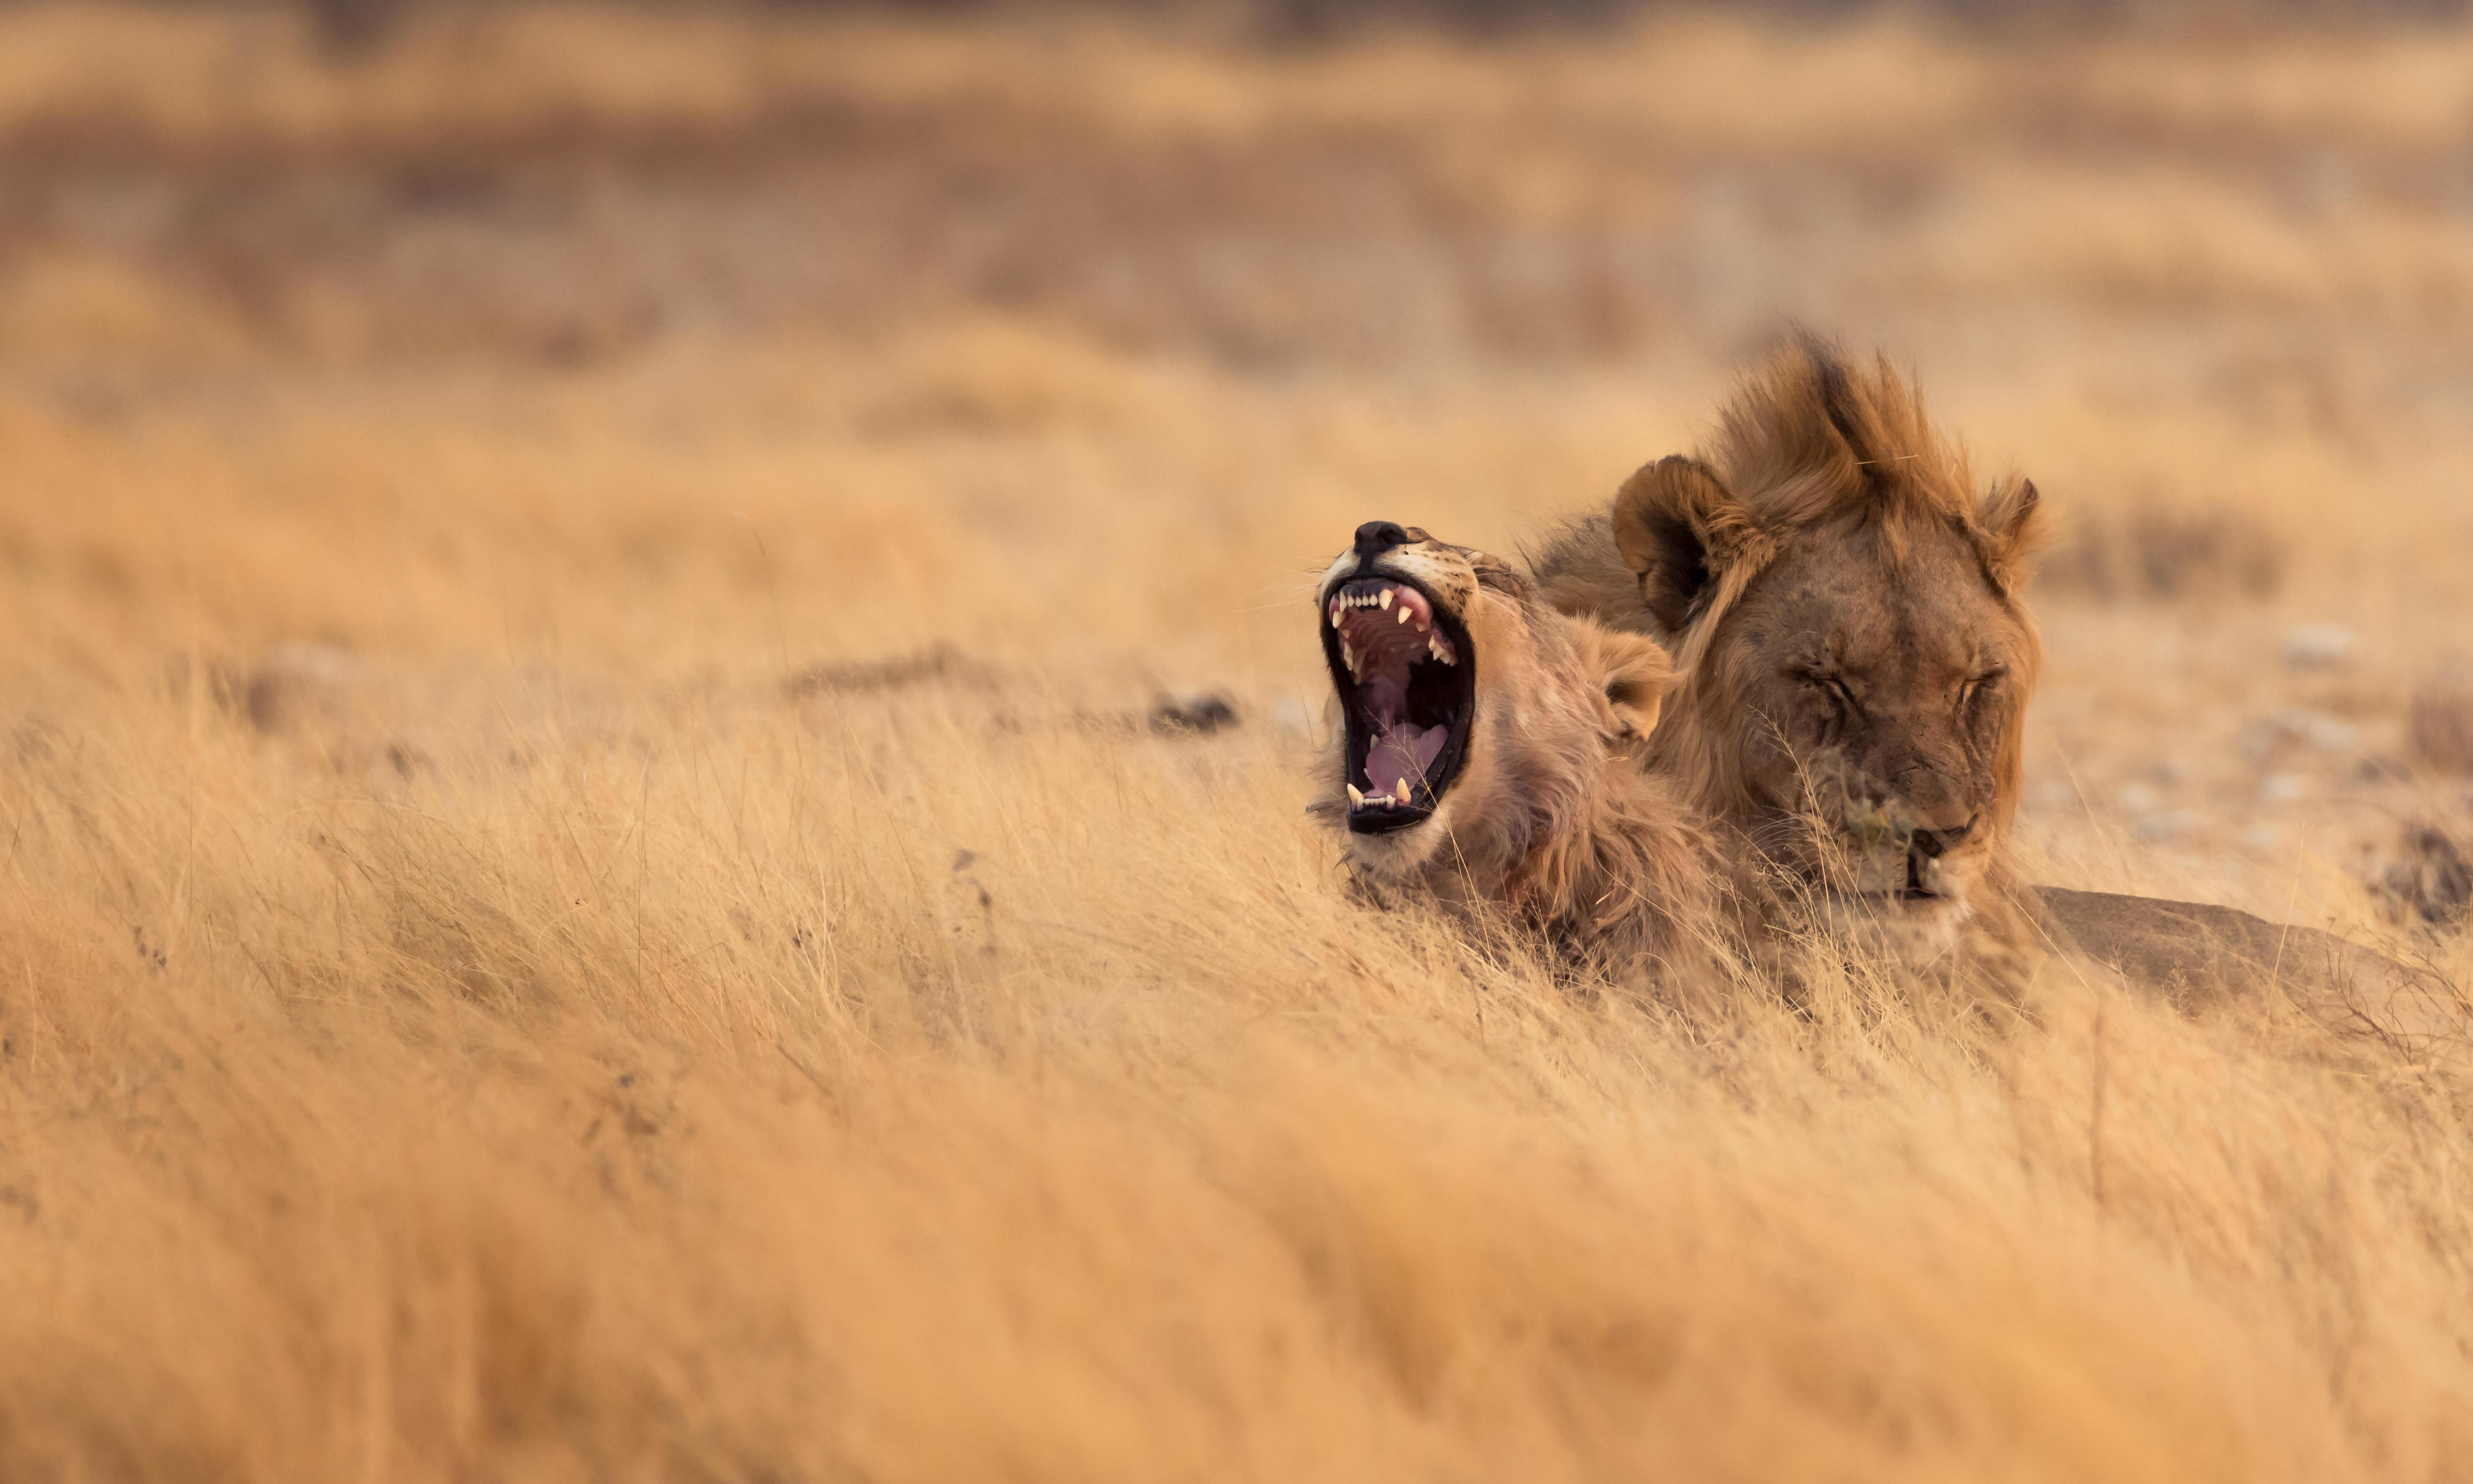 South Africa: wild animals at risk of 'genetic pollution'